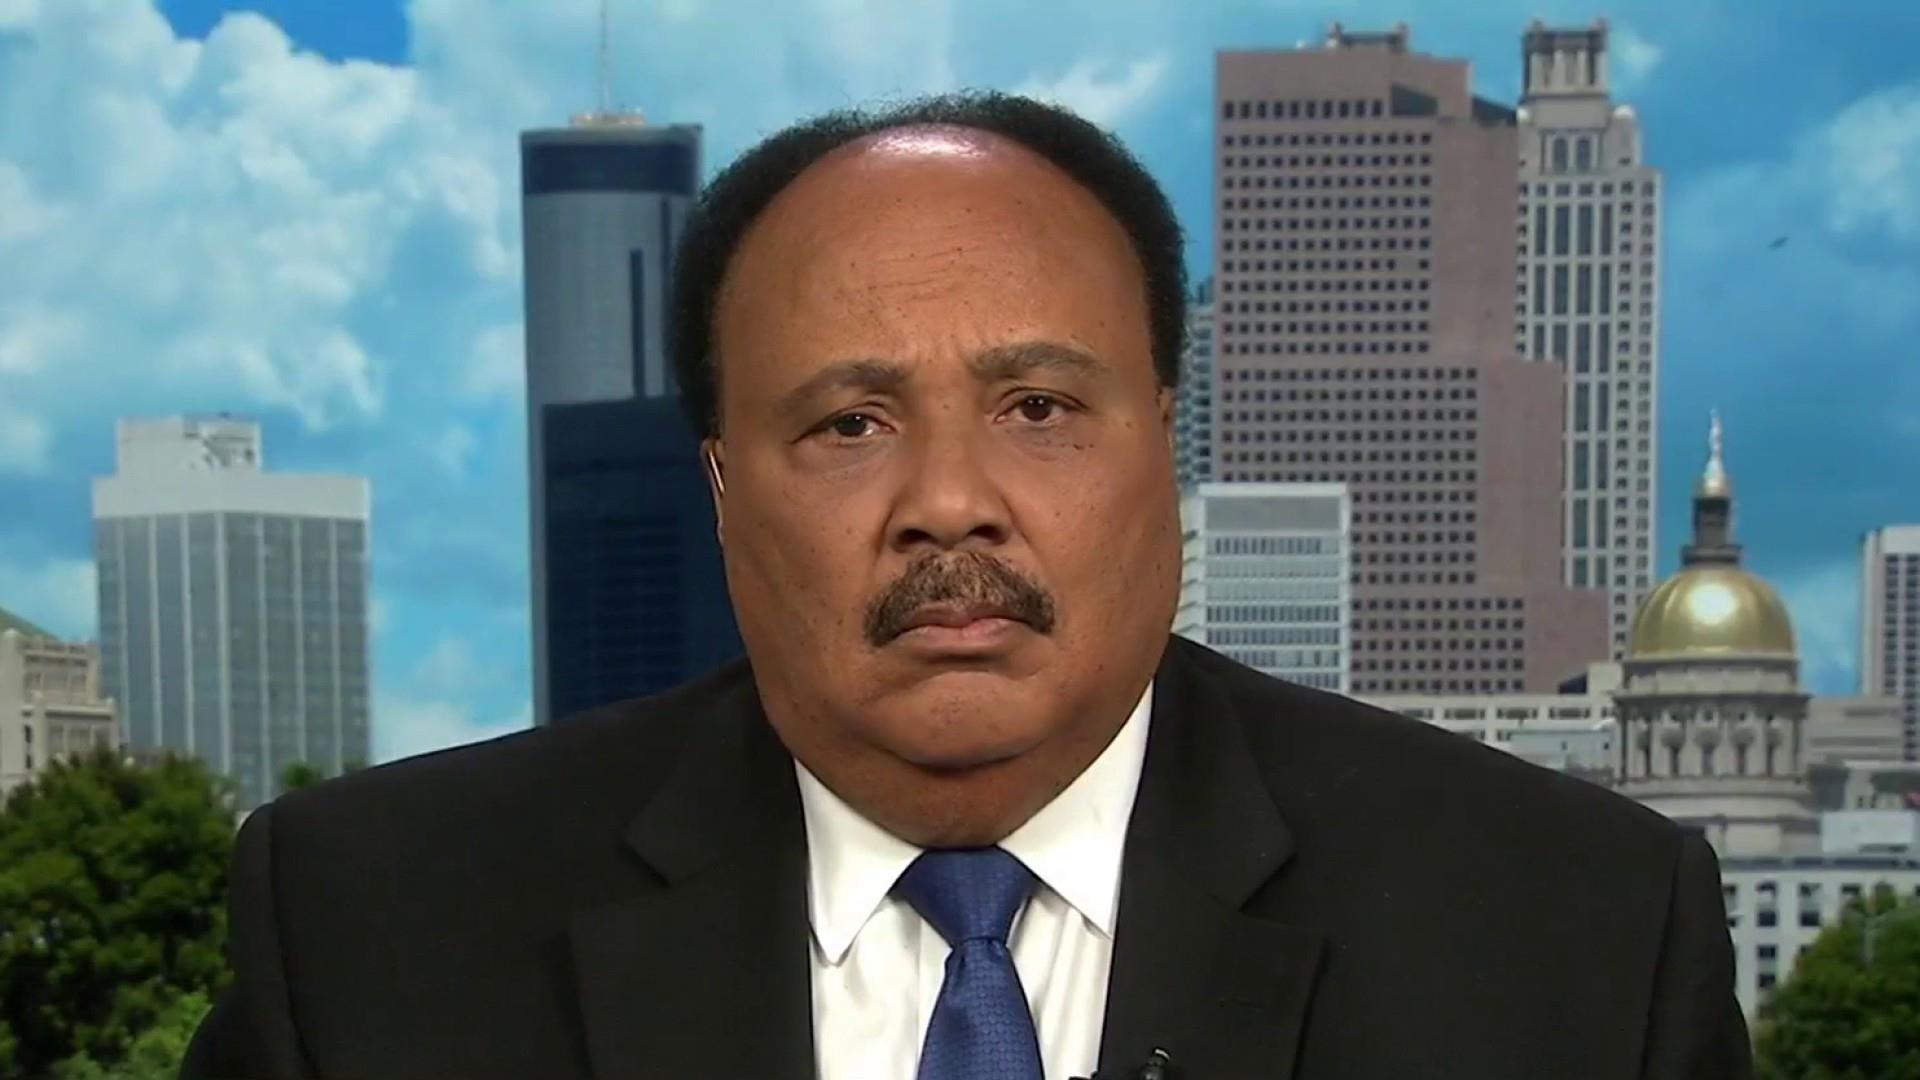 Martin Luther King III: 'Is this the America I want to live in?'